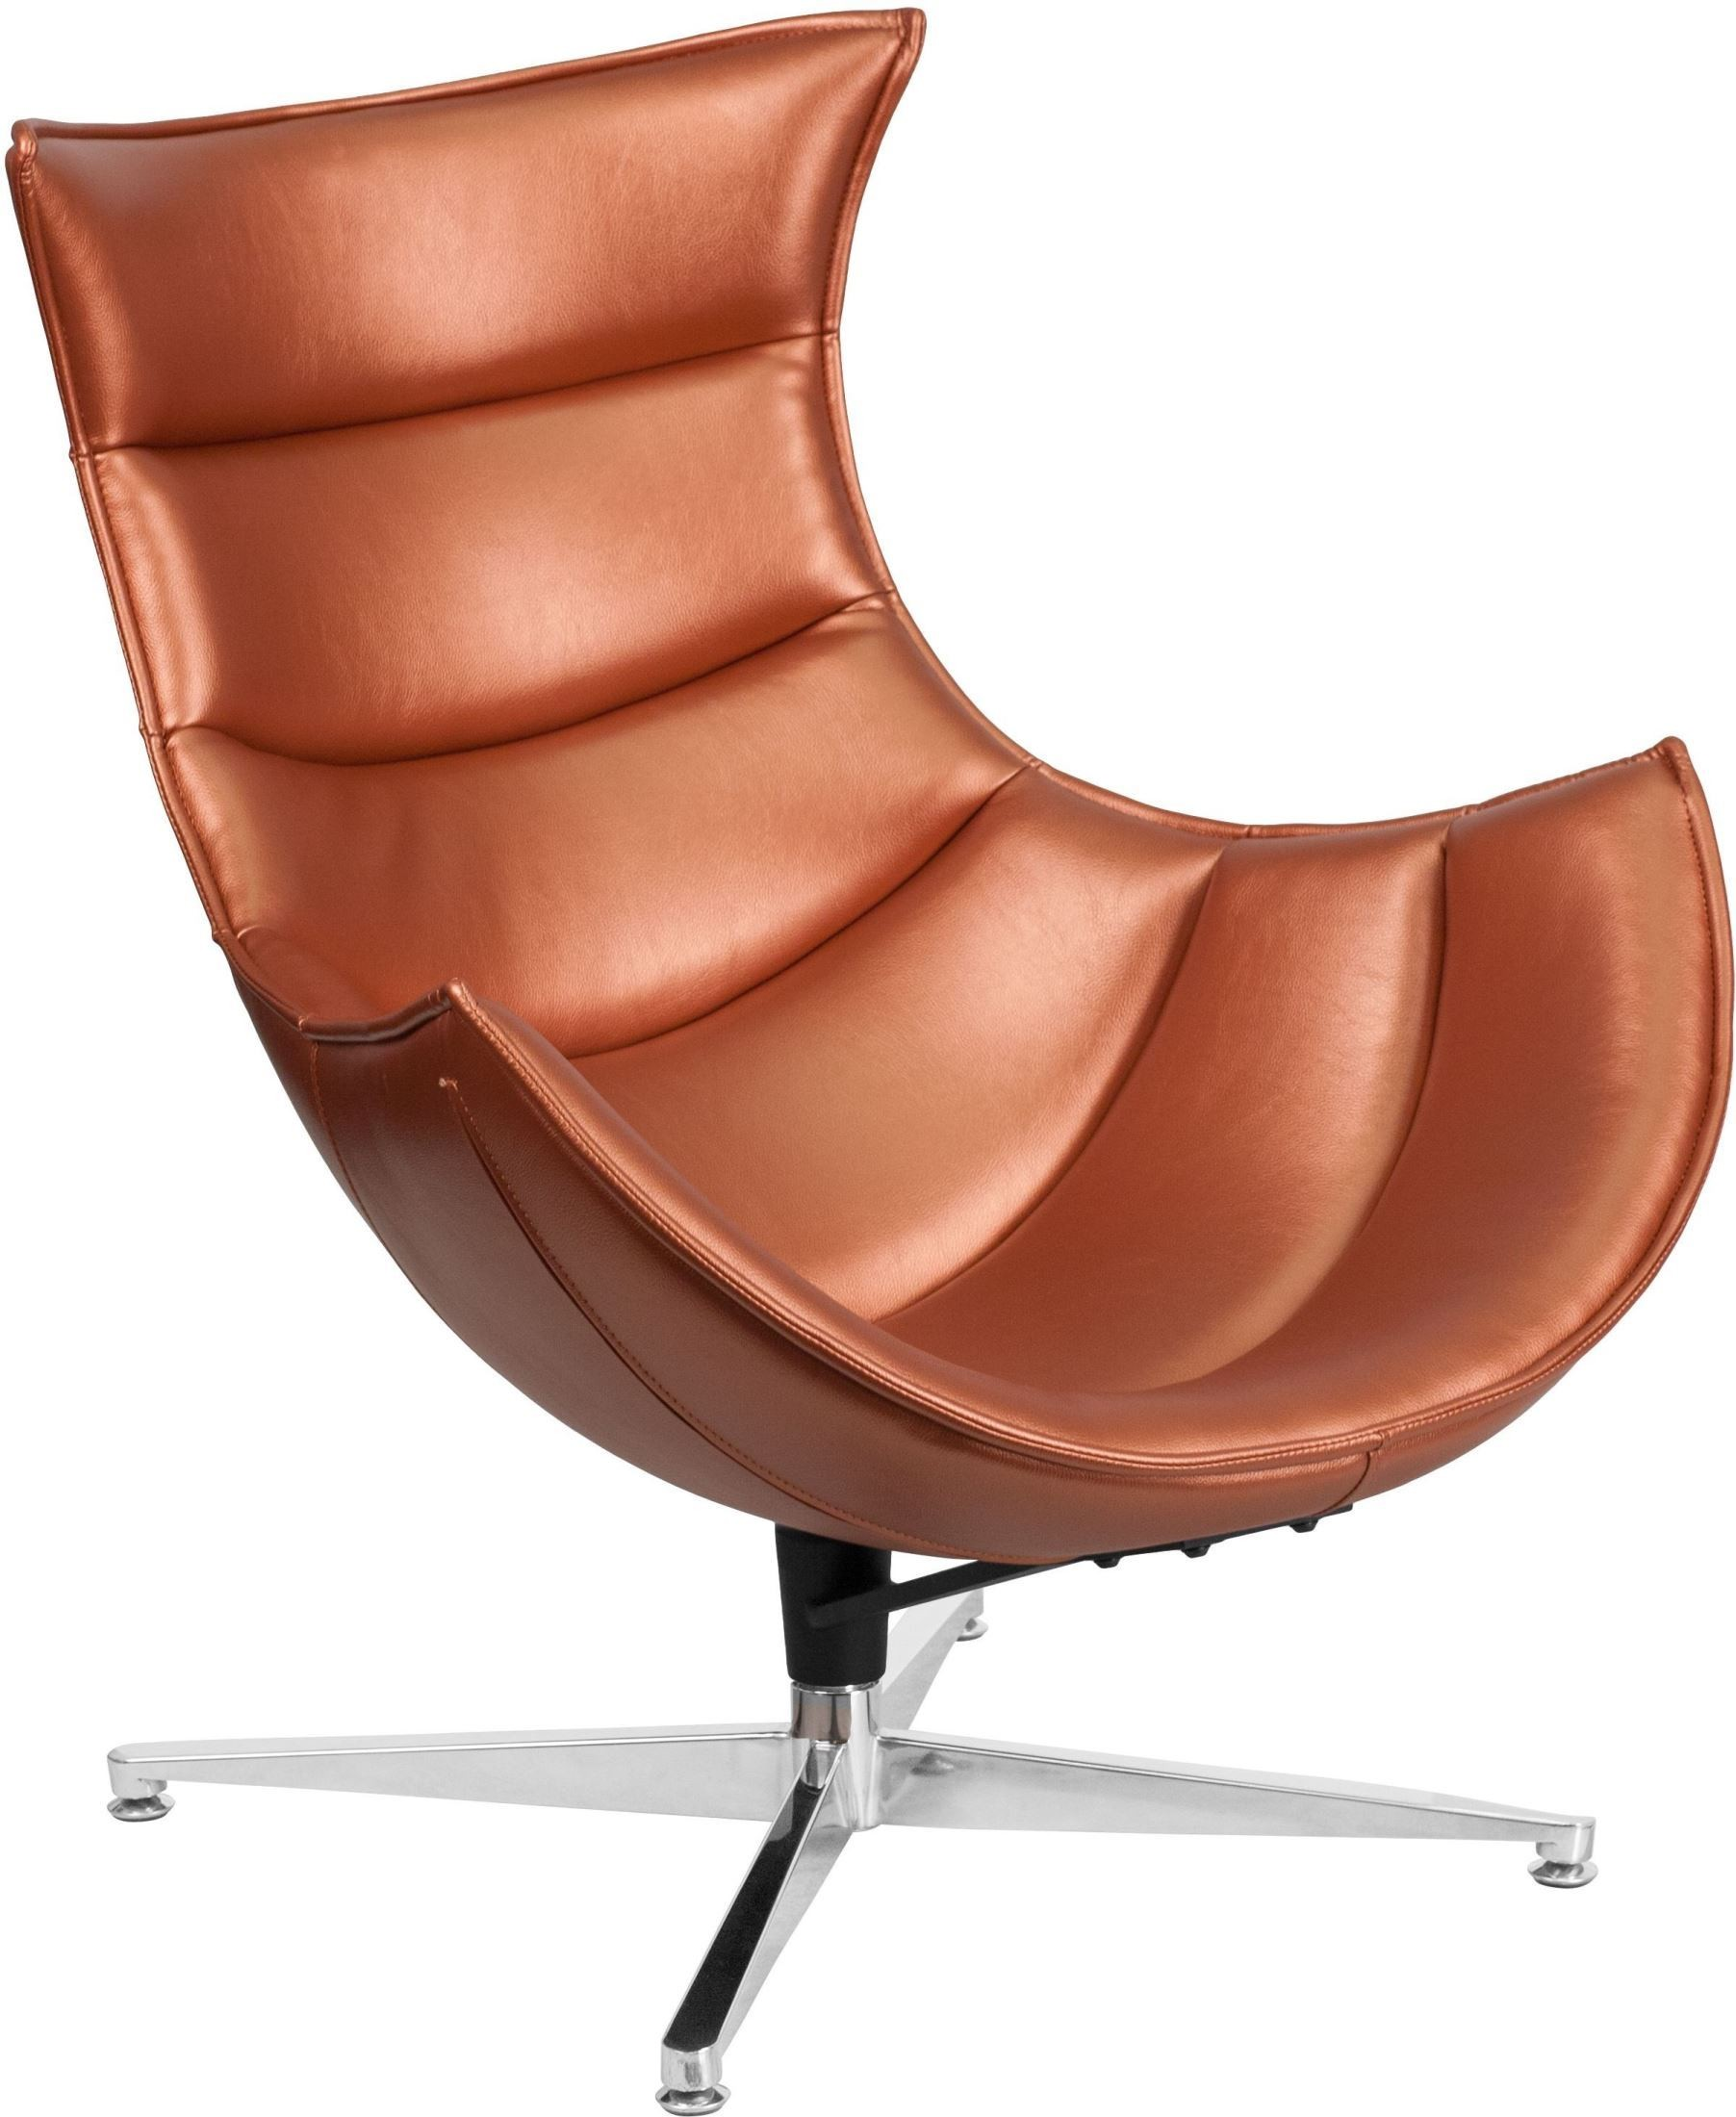 Cocoon Chair Copper Leather Swivel Cocoon Chair Zb 36 Gg Renegade